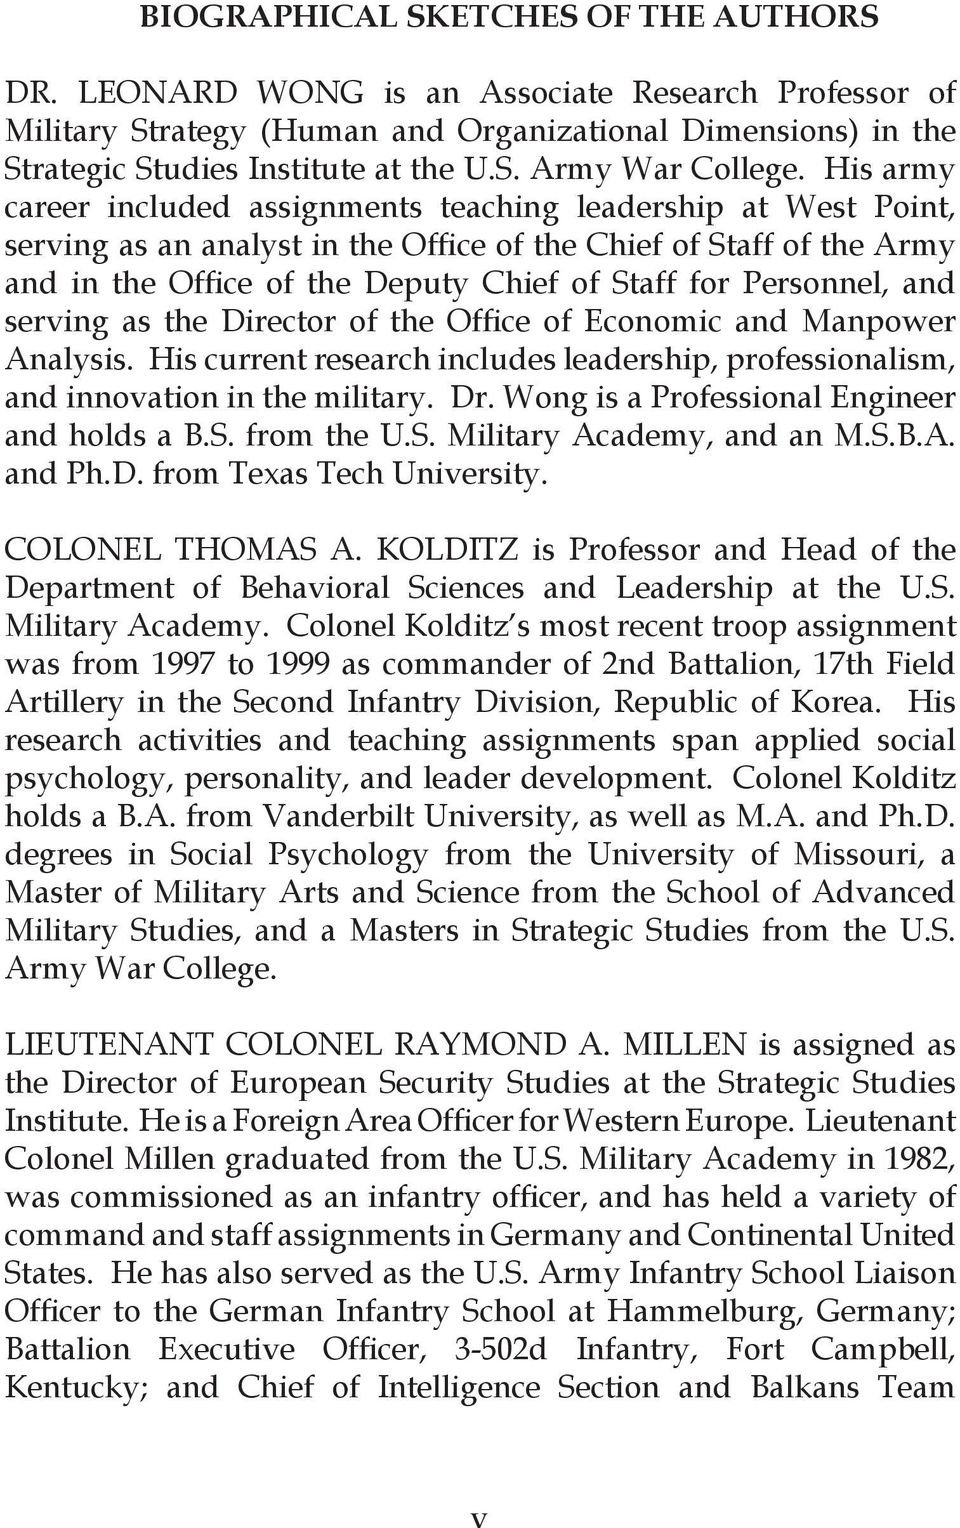 Personnel, and serving as the Director of the Office of Economic and Manpower Analysis. His current research includes leadership, professionalism, and innovation in the military. Dr.